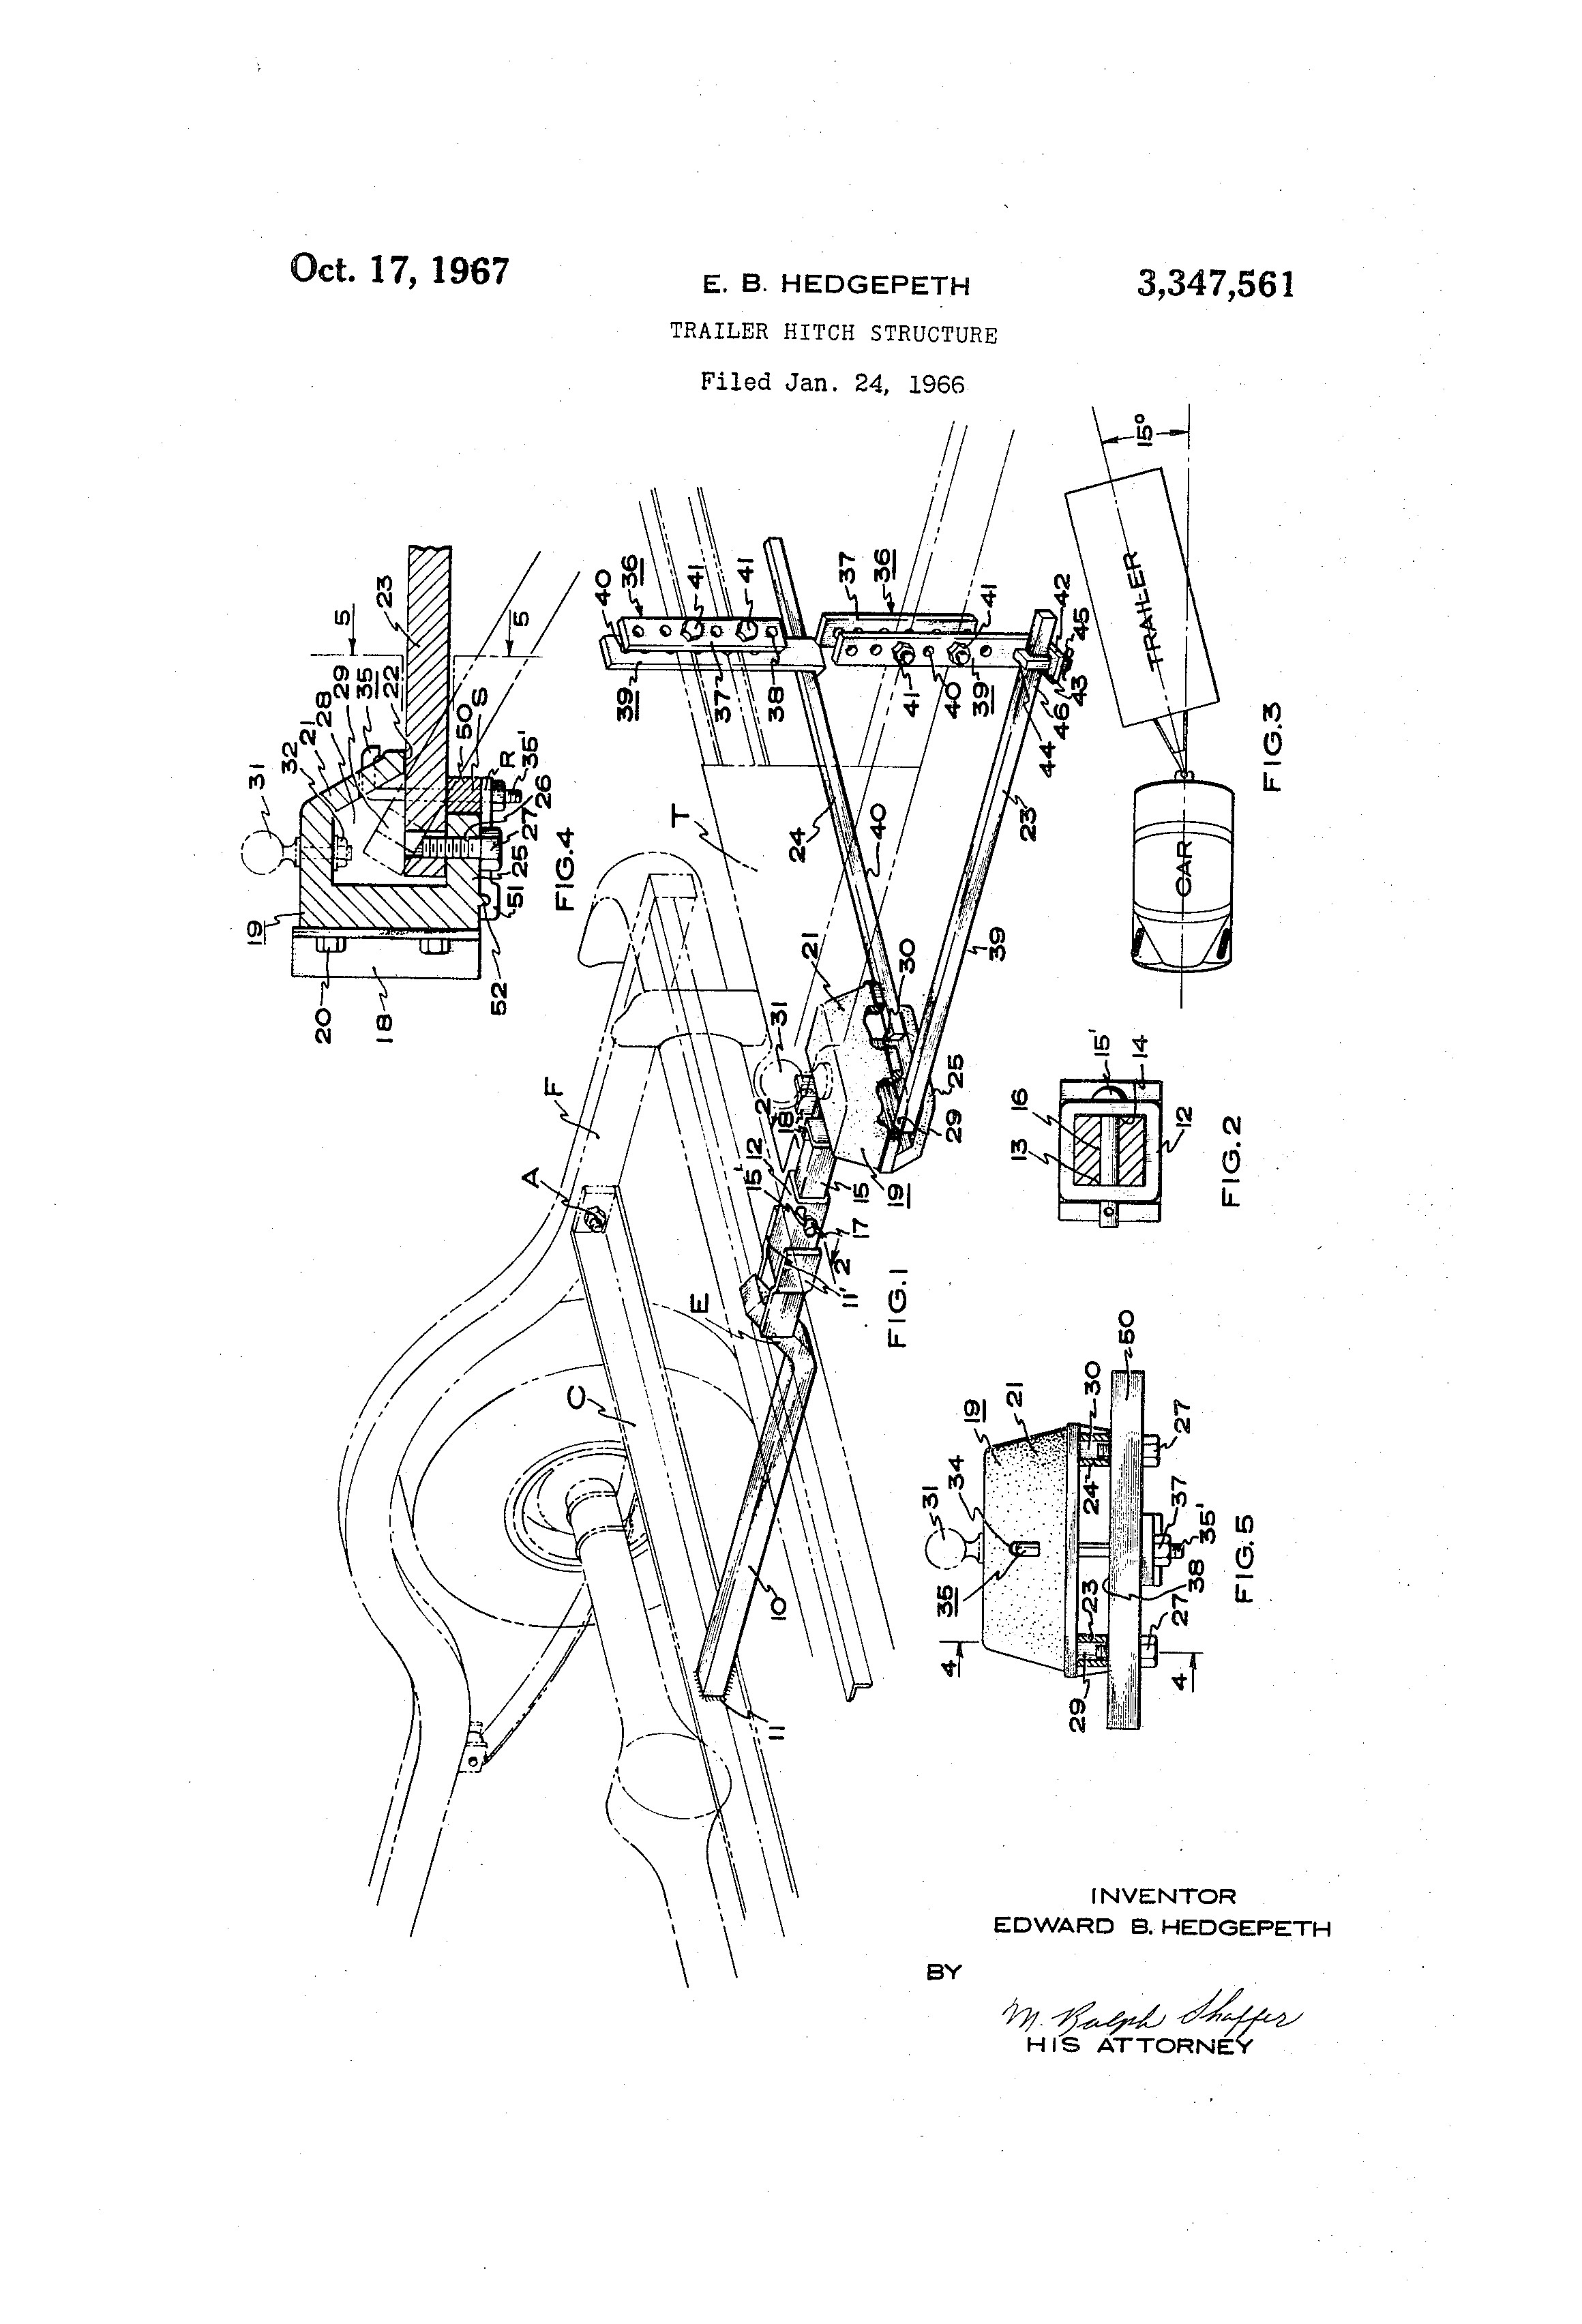 Sway Bar Diagram Patent Us Trailer Hitch Structure Google Patents Of Sway Bar Diagram